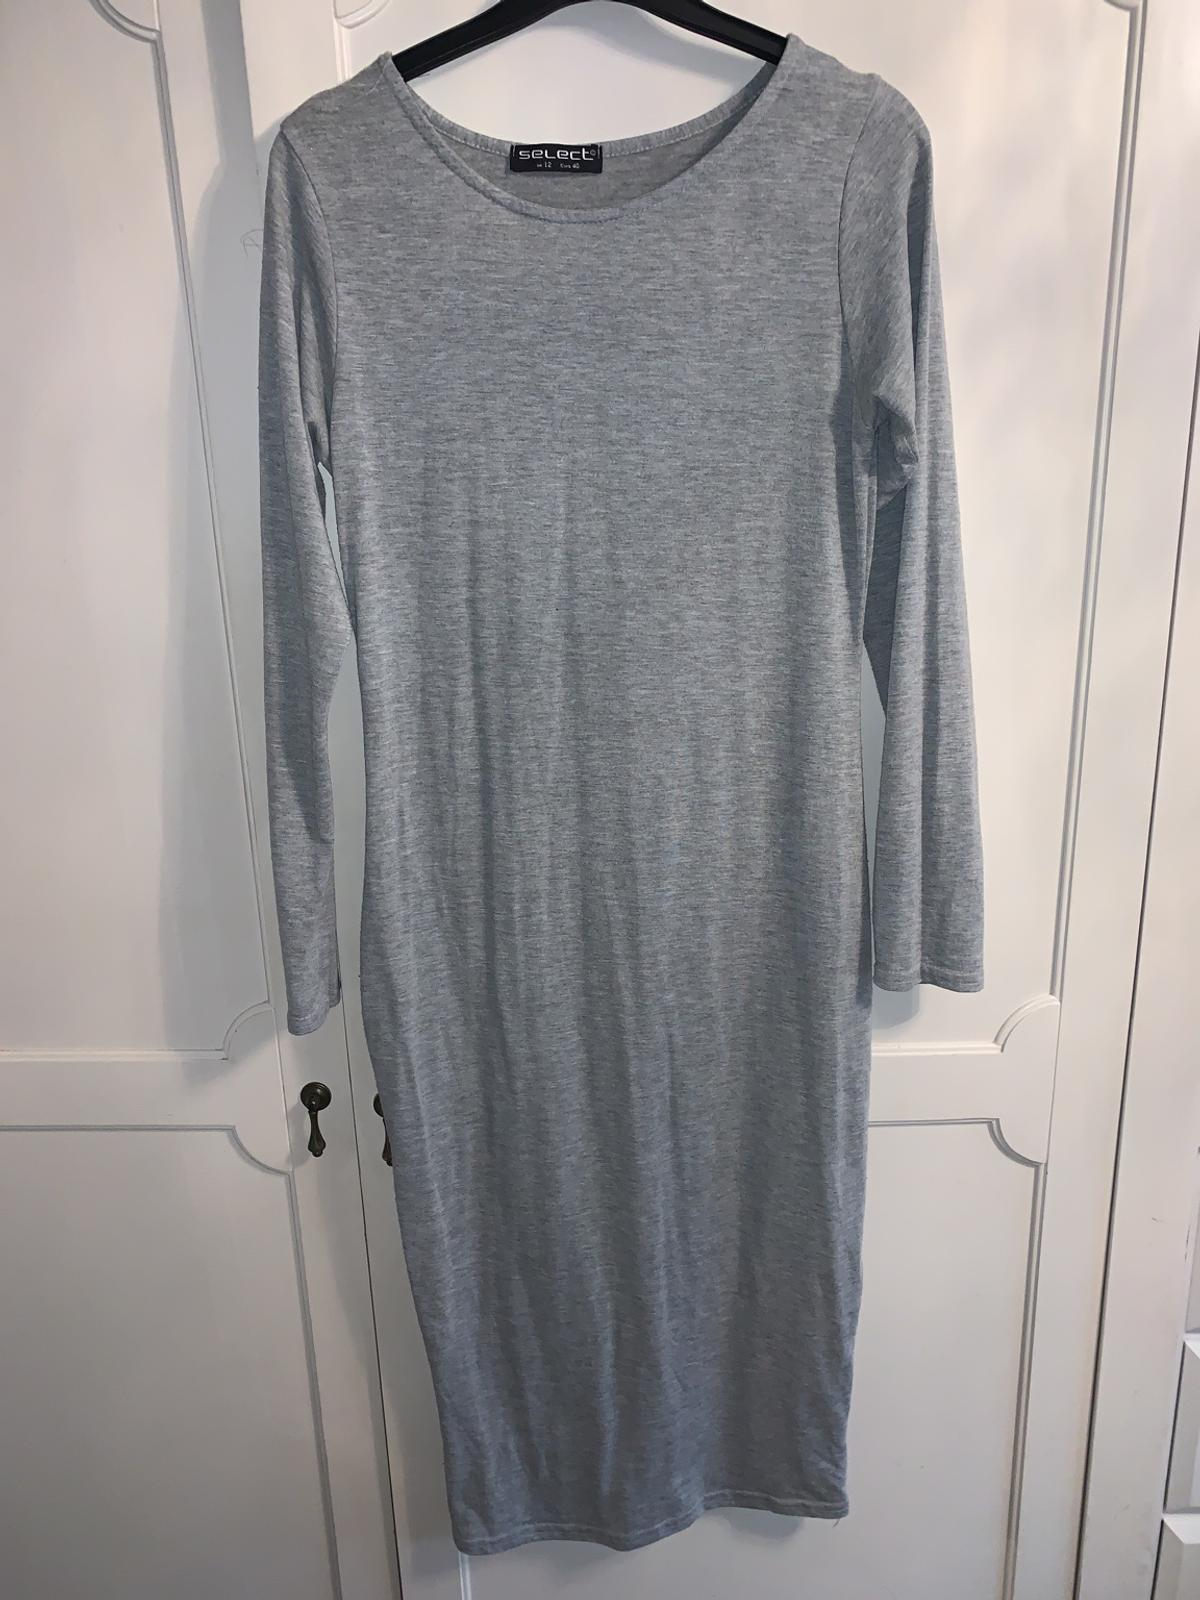 Size 12 Select light grey long sleeved body mid length dress body con fitted